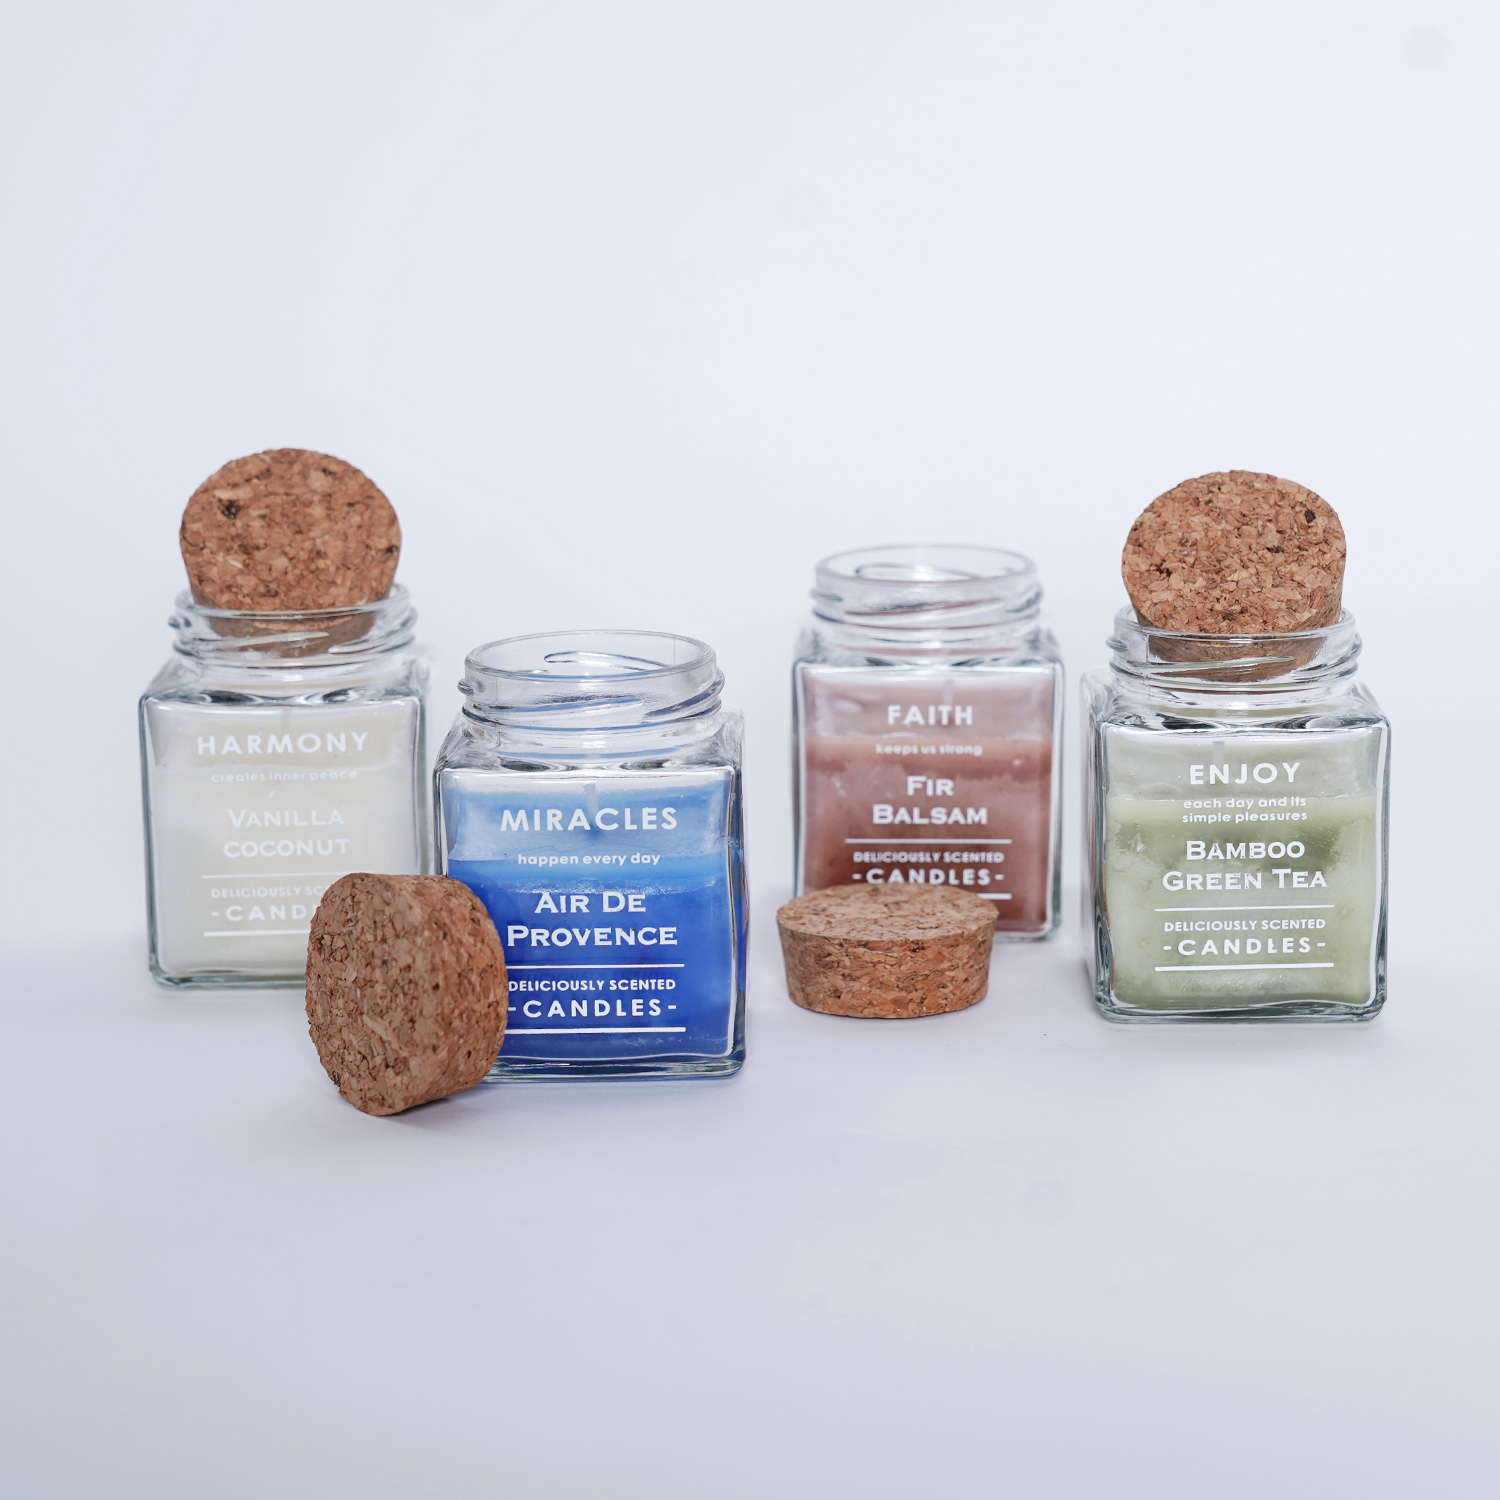 4 Aromatic Scented Candles: Candles